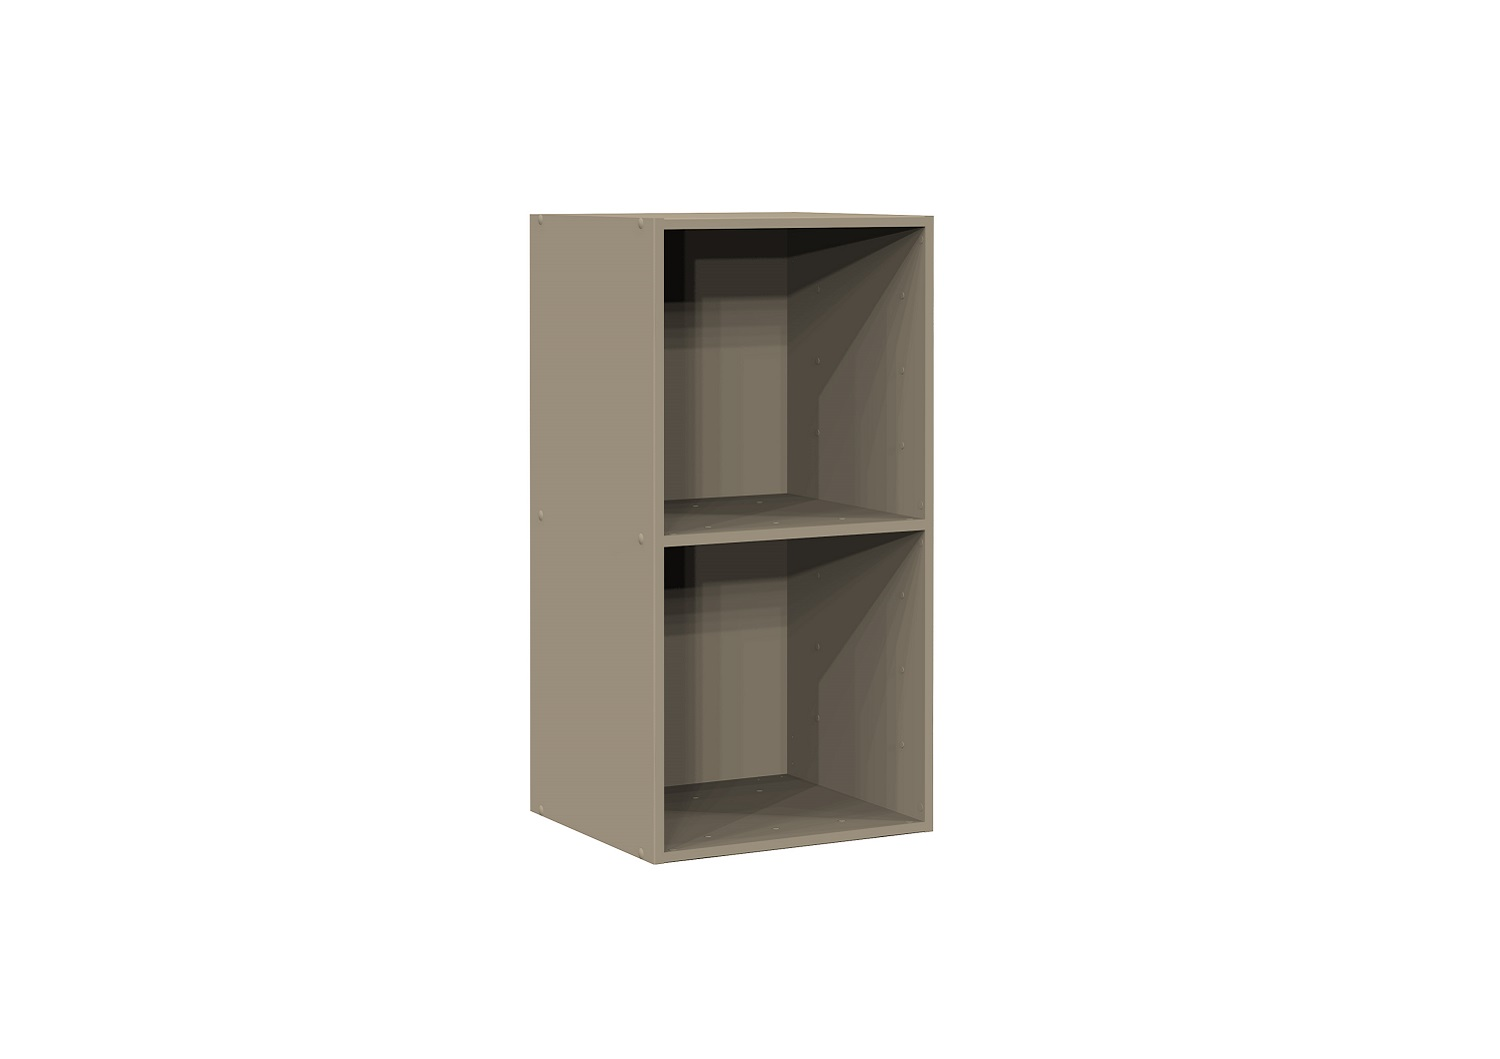 Bilrich Storage Furniture - Multi Kaz 2x1 Cube Taupe